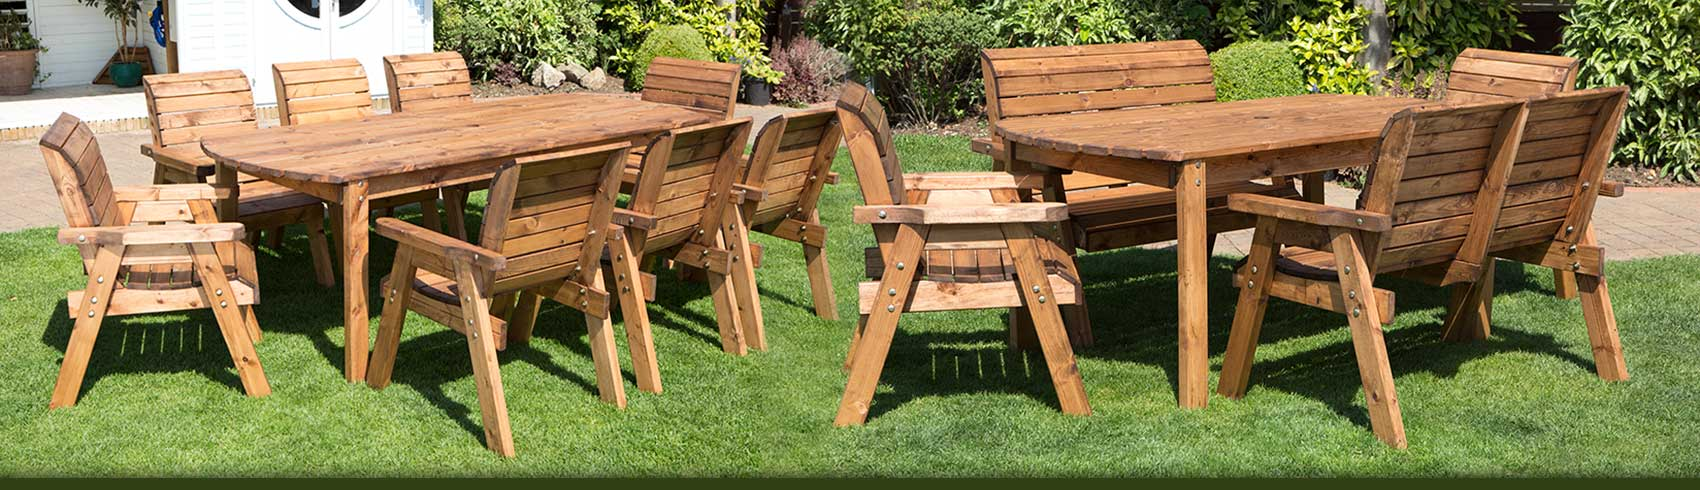 commercial outdoor furniture - Garden Furniture Traditional